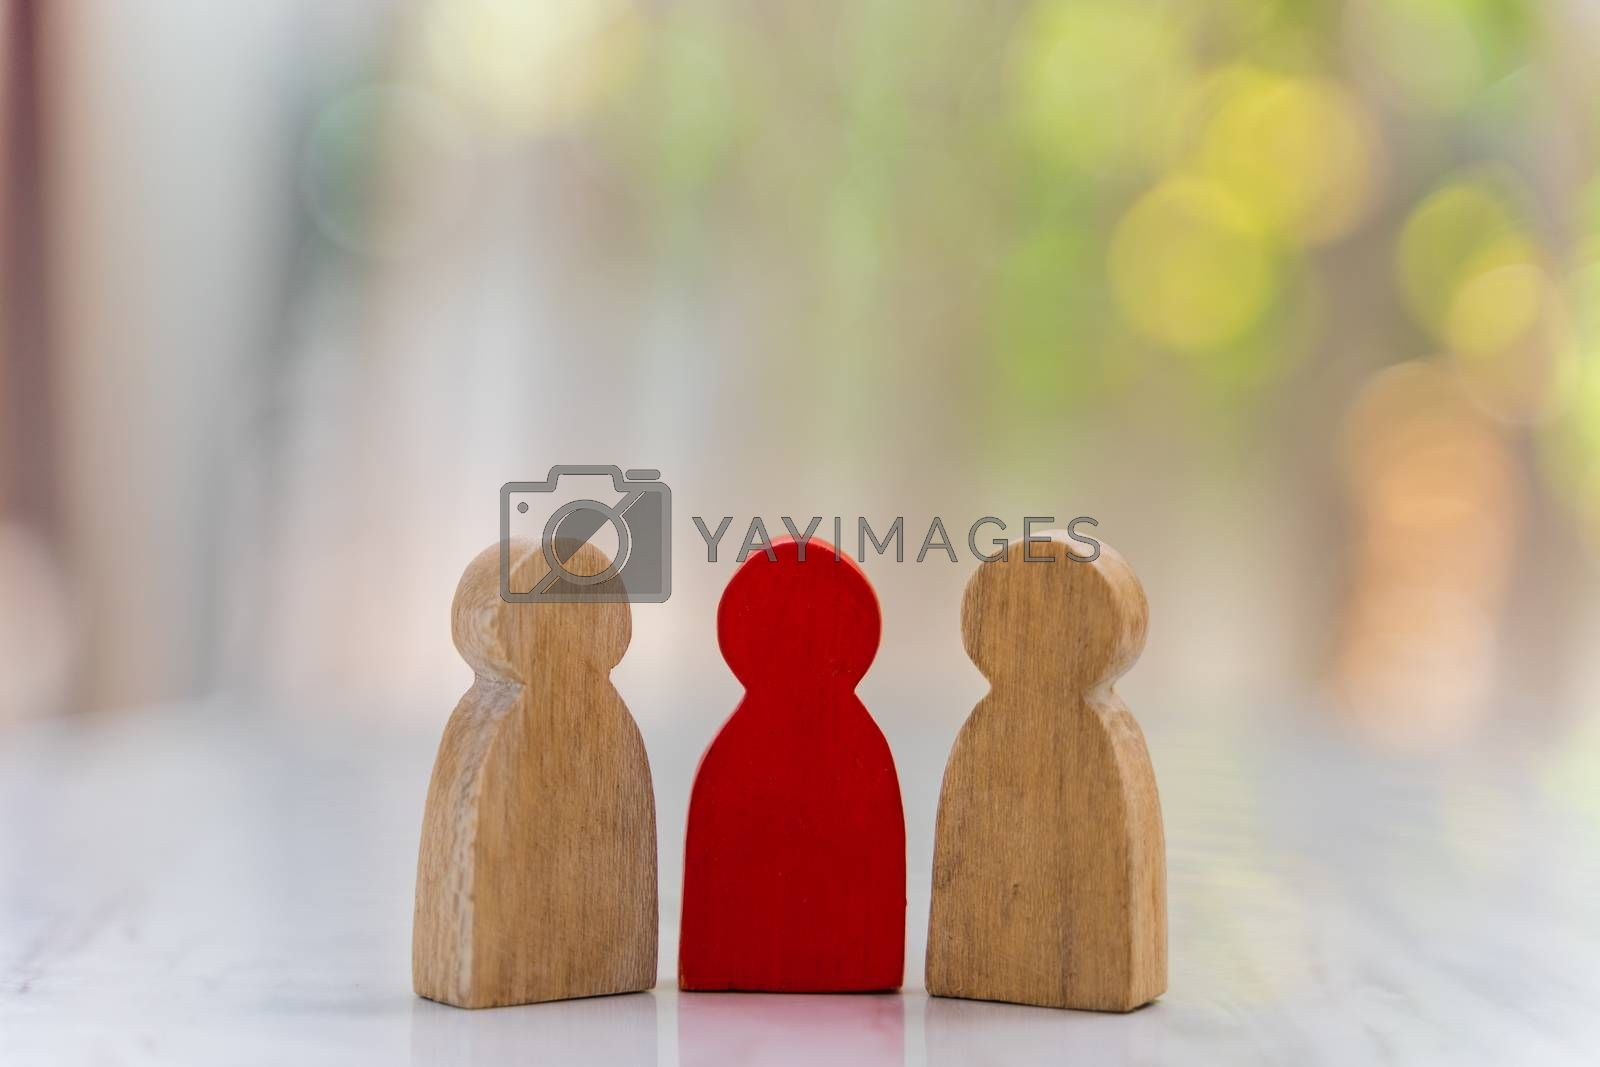 Figure in human resource management concept. The group of wooden puppets A red wooden figure like an dominant in a group with blur bokeh background